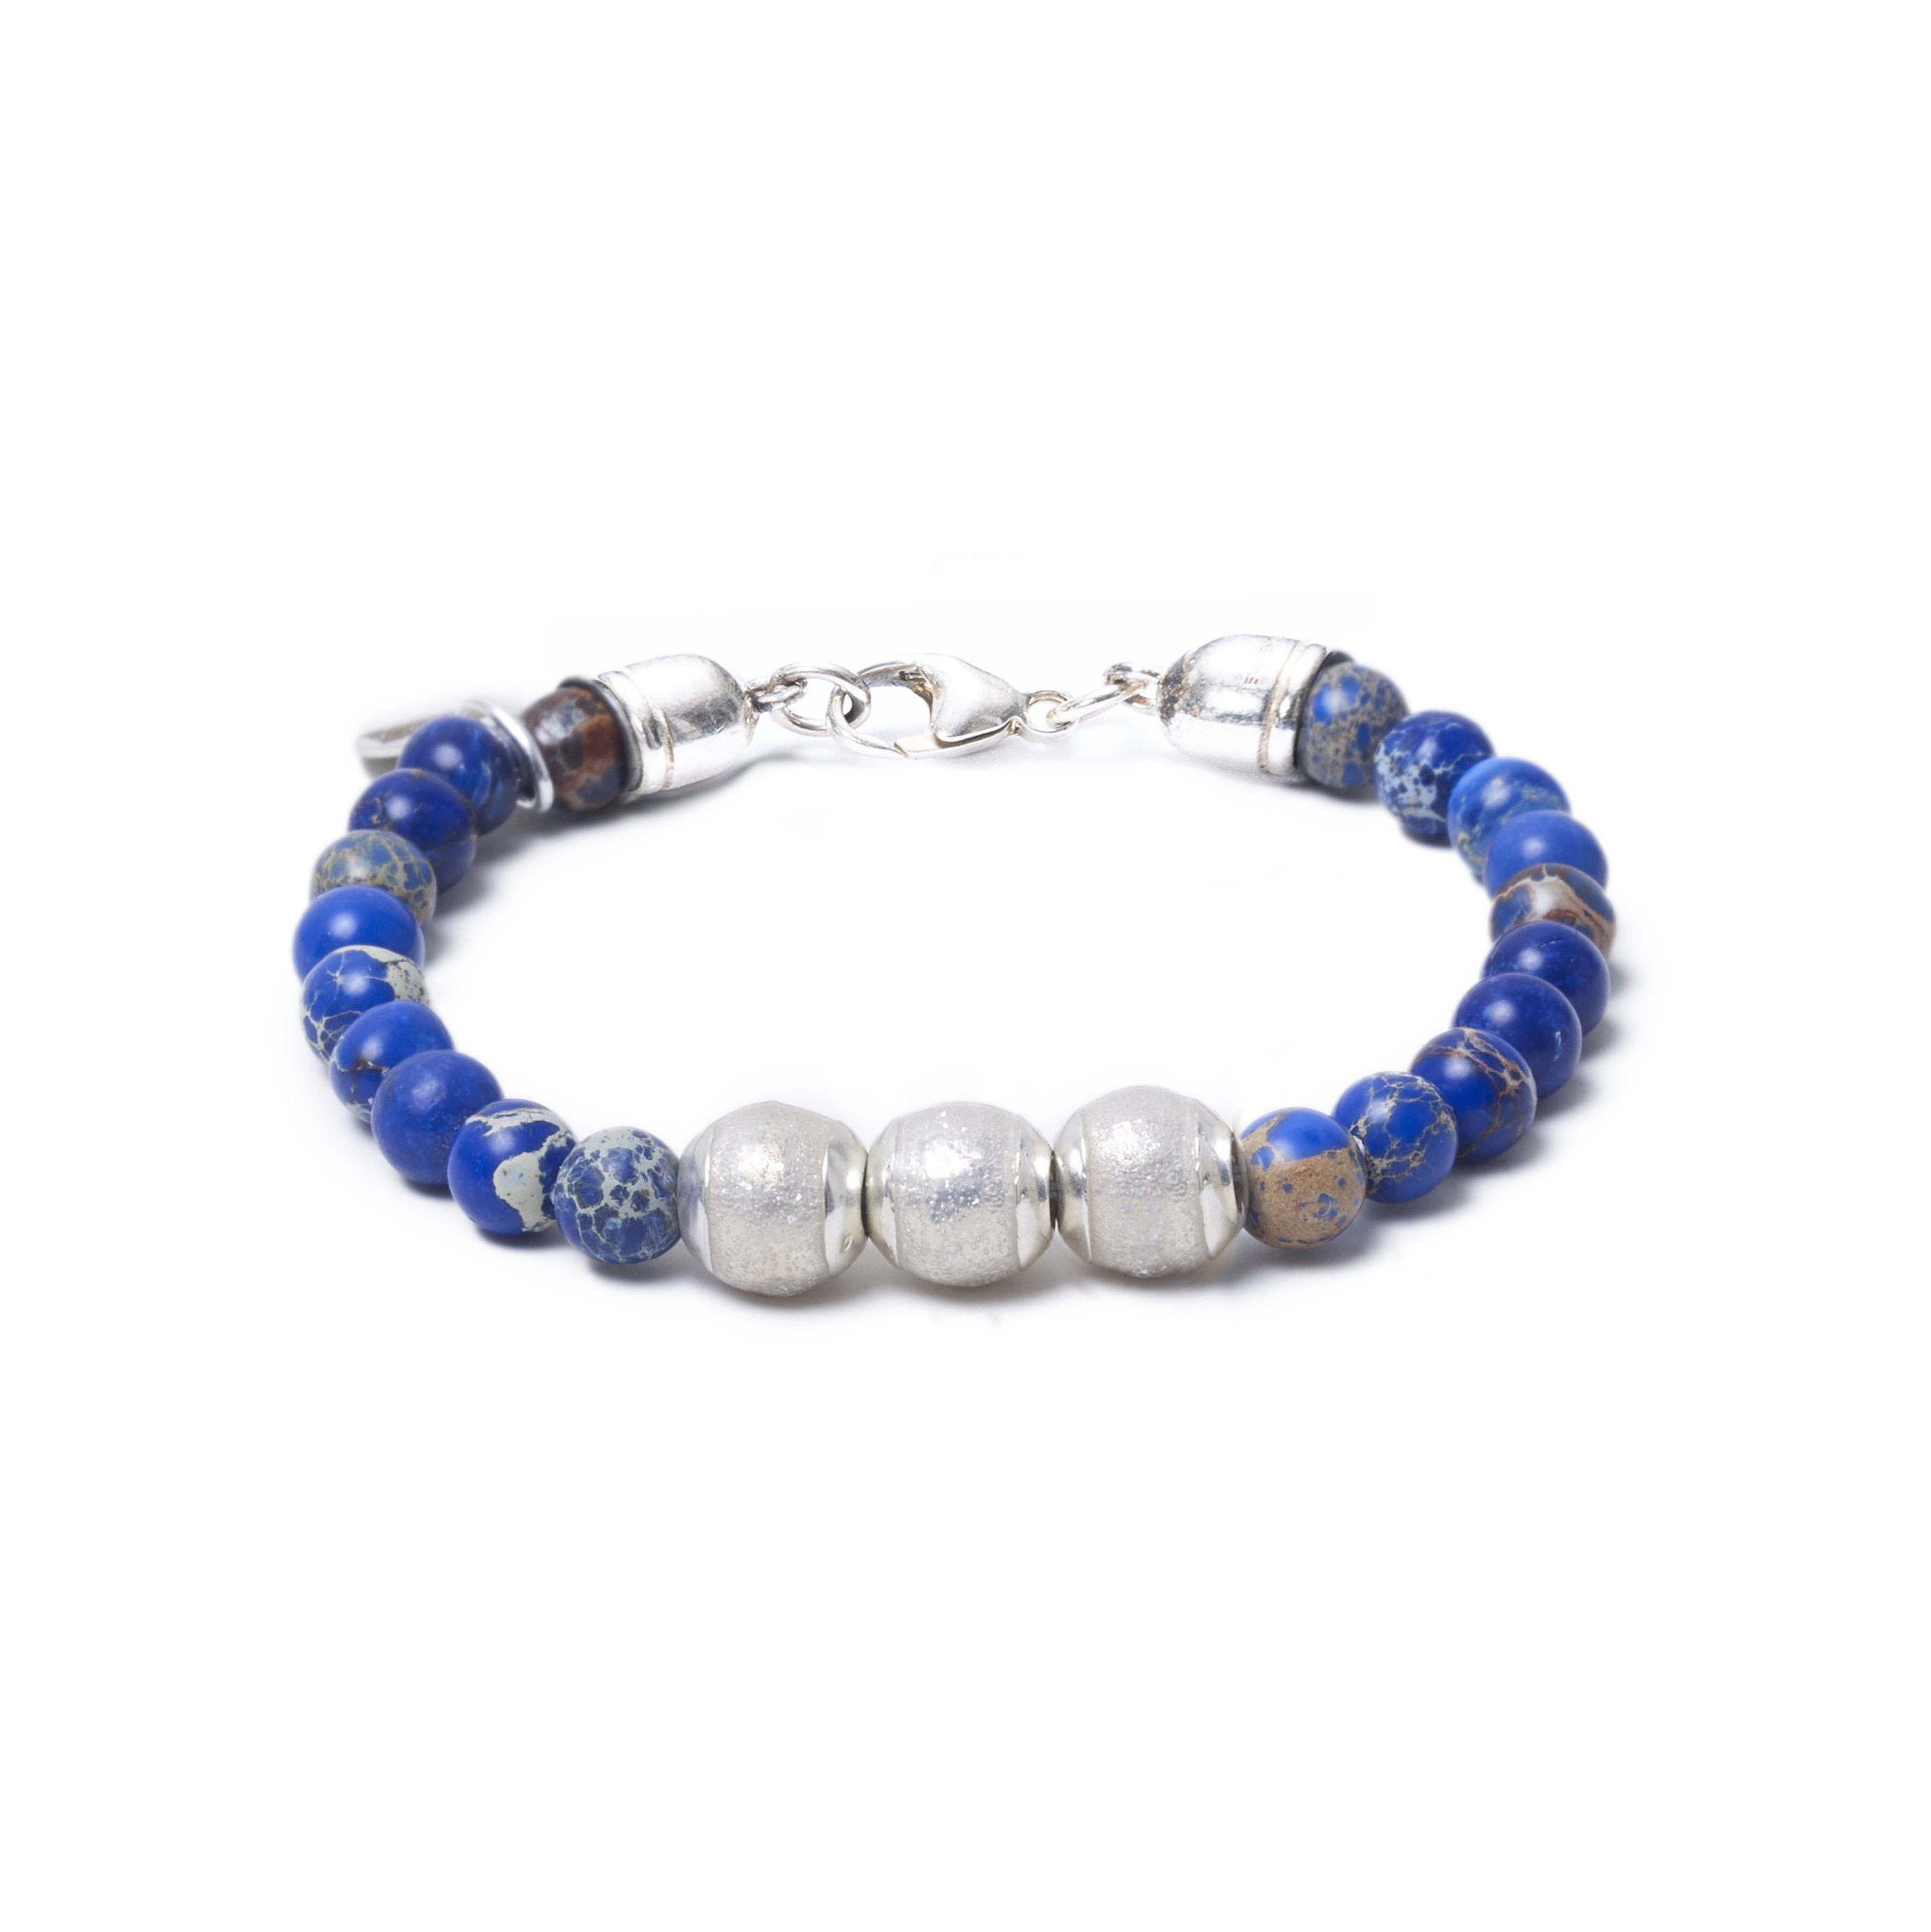 Blue Sea Jasper, Three Everence Beads everence.life Clear Lobster Claw 7